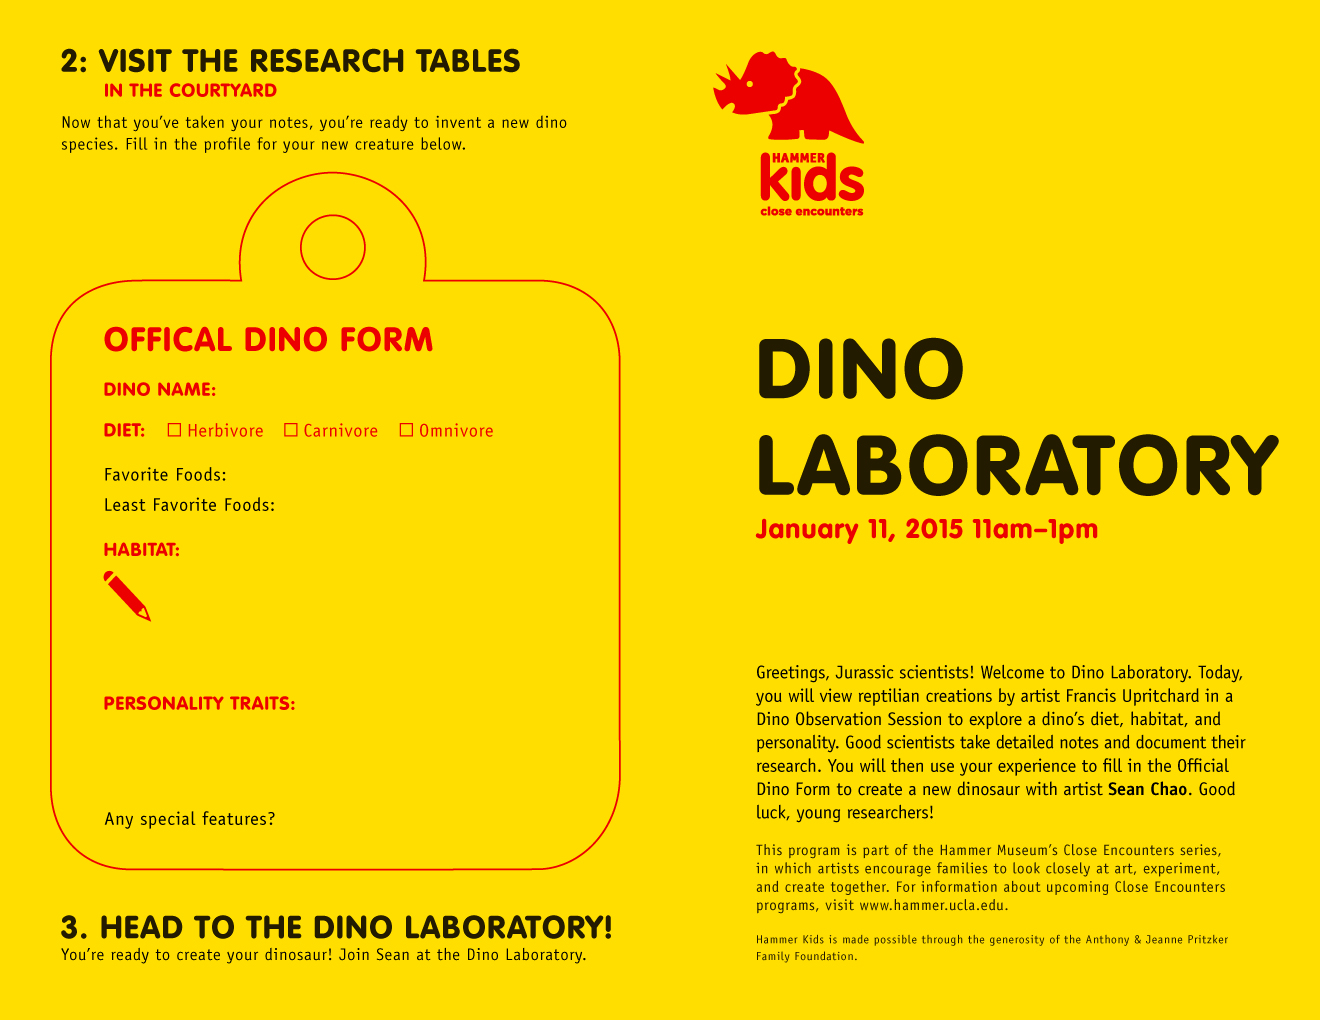 2_CLOSE_ENCOUNTERS_WI_15_DINO_LAB-2-1.jpg